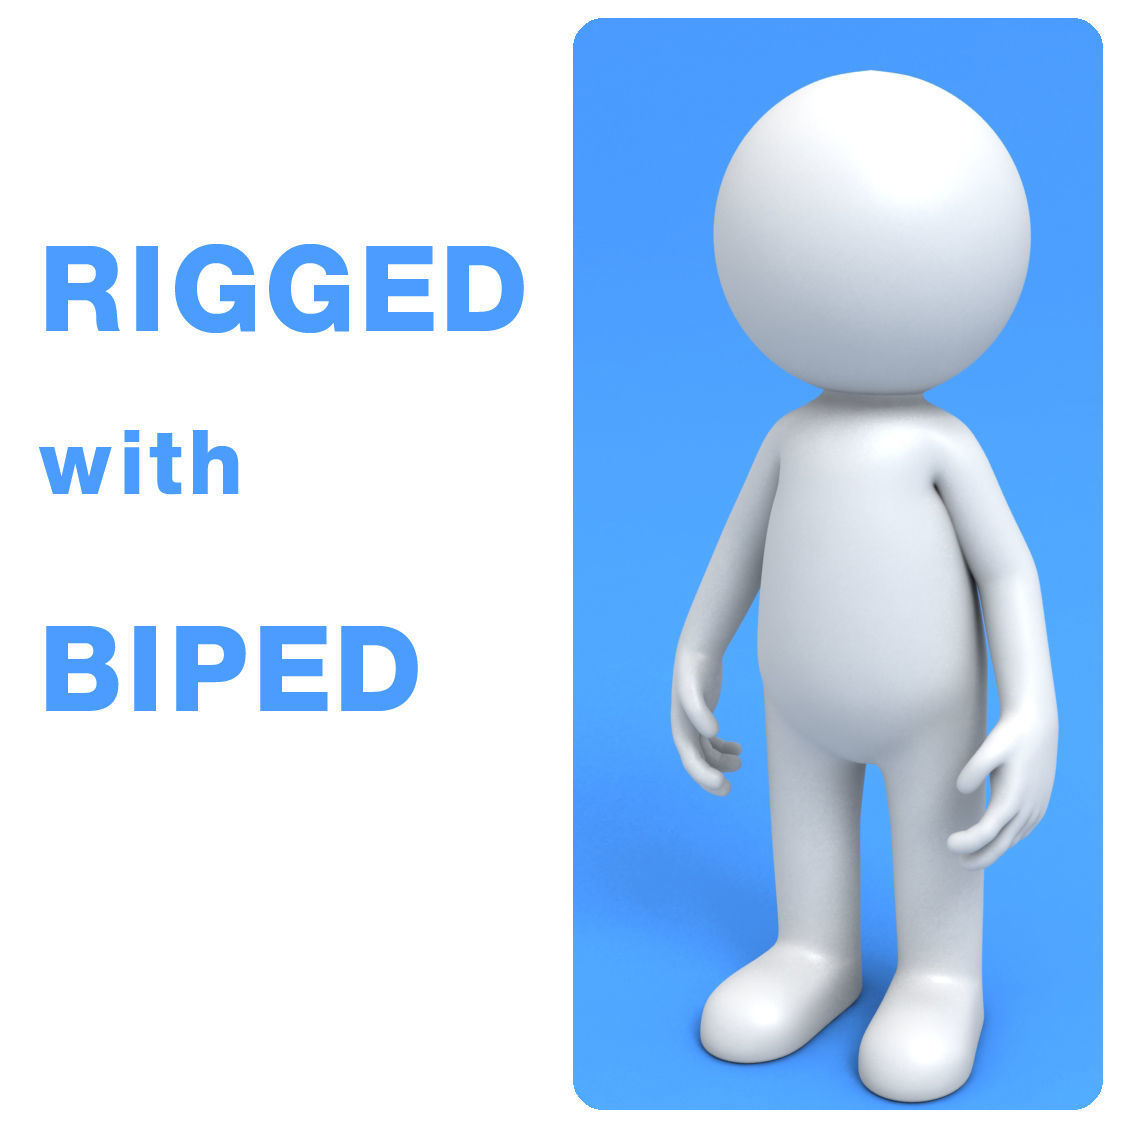 Stickman rigged with biped